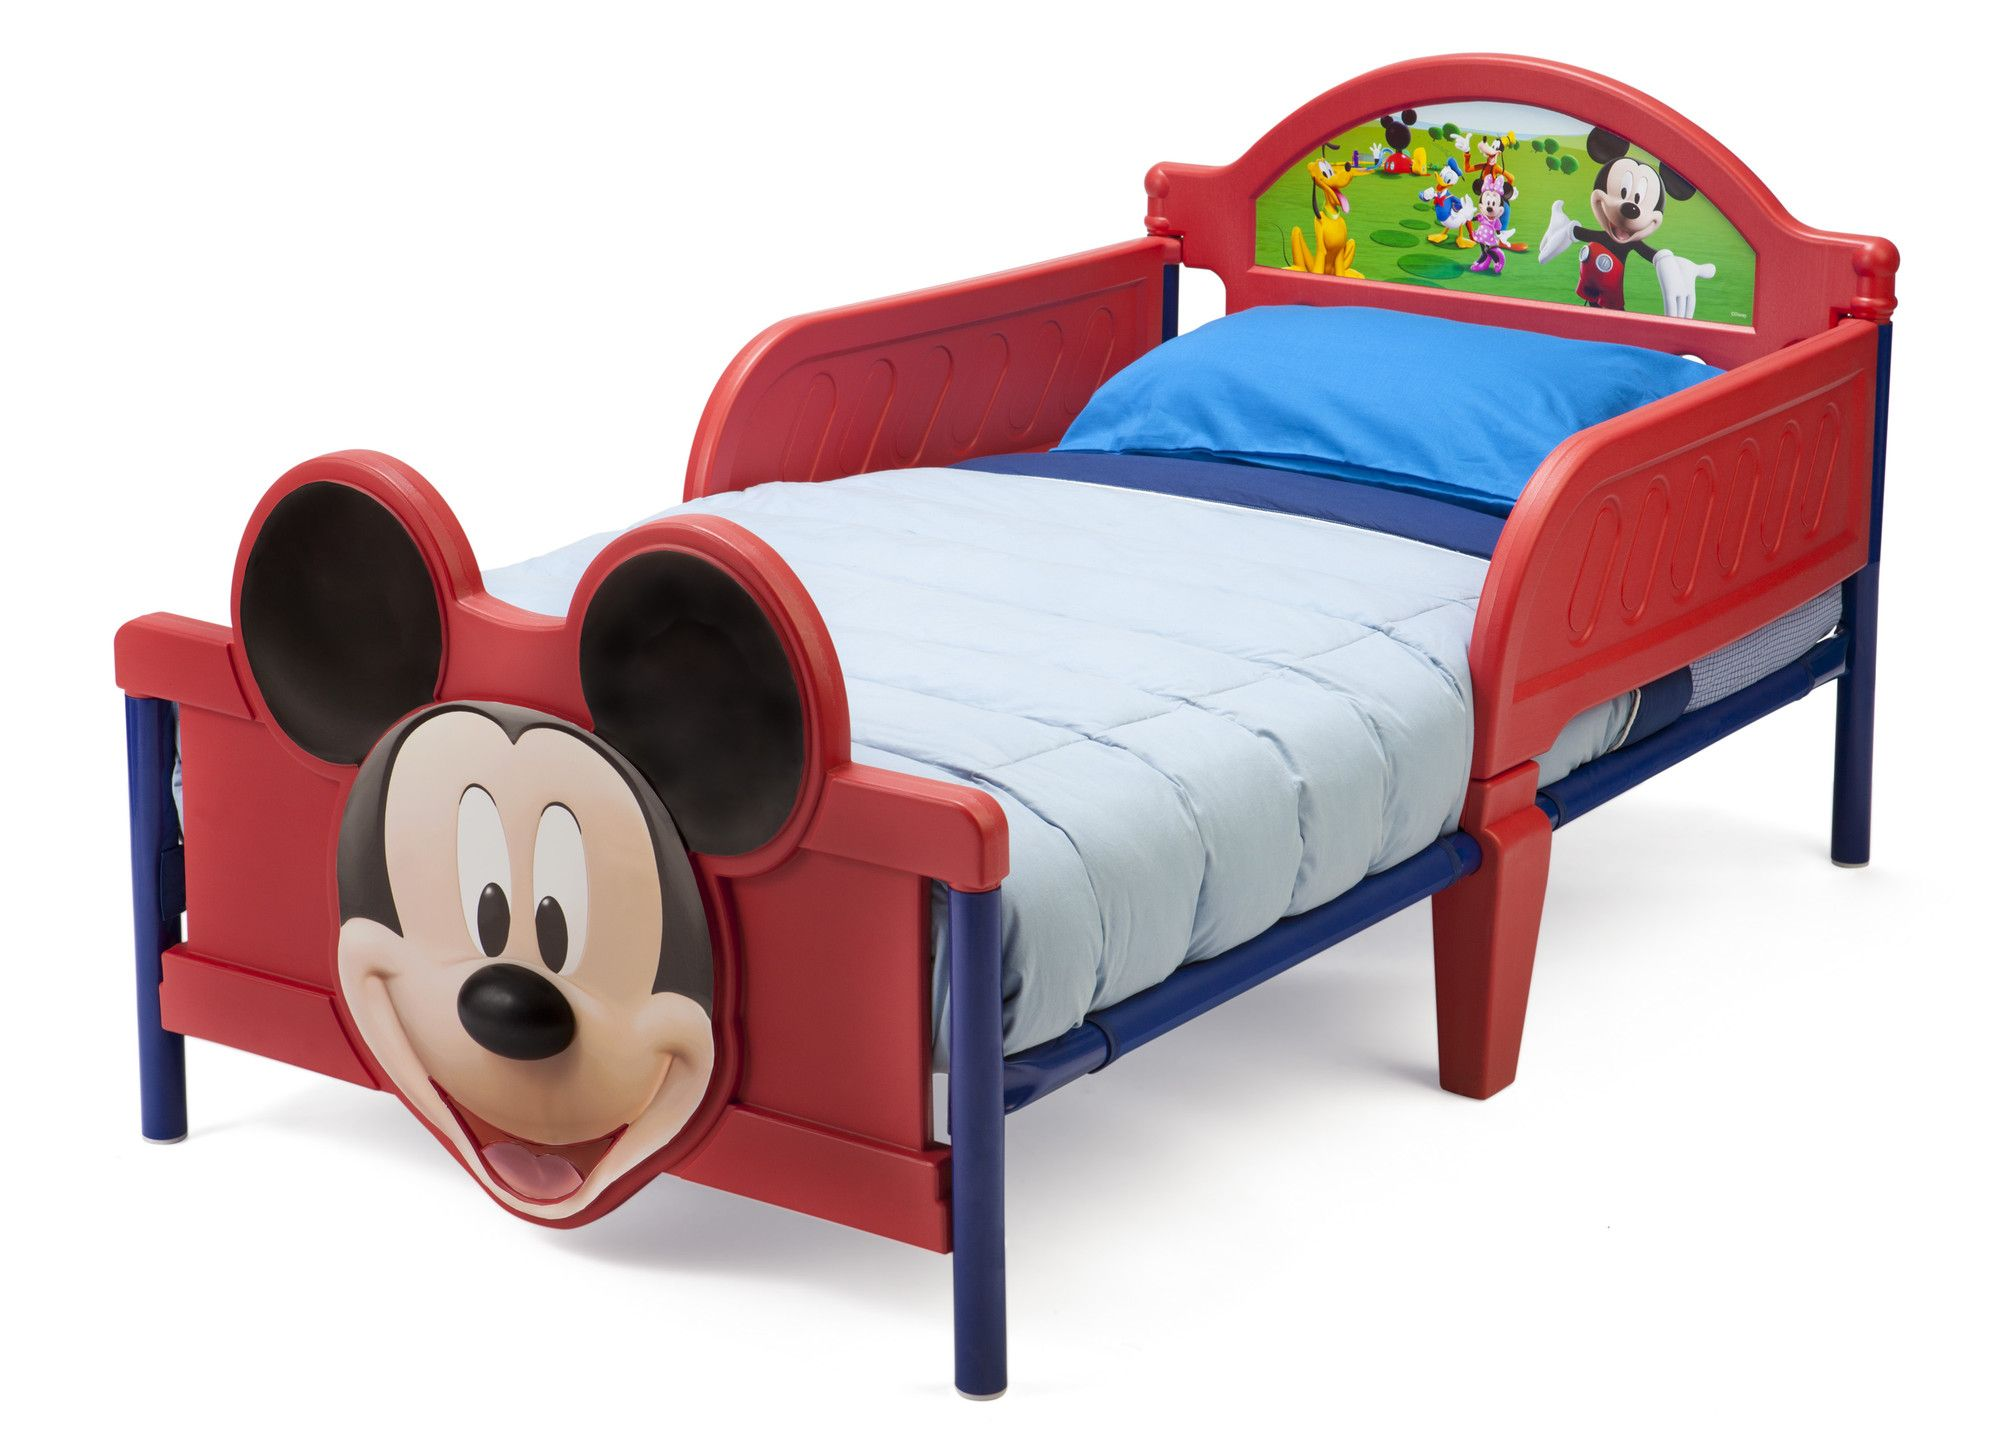 Mickey mouse toddler bed for boy or girl trendy toddler beds for boys pinterest mickey - Toddler beds for boys ...